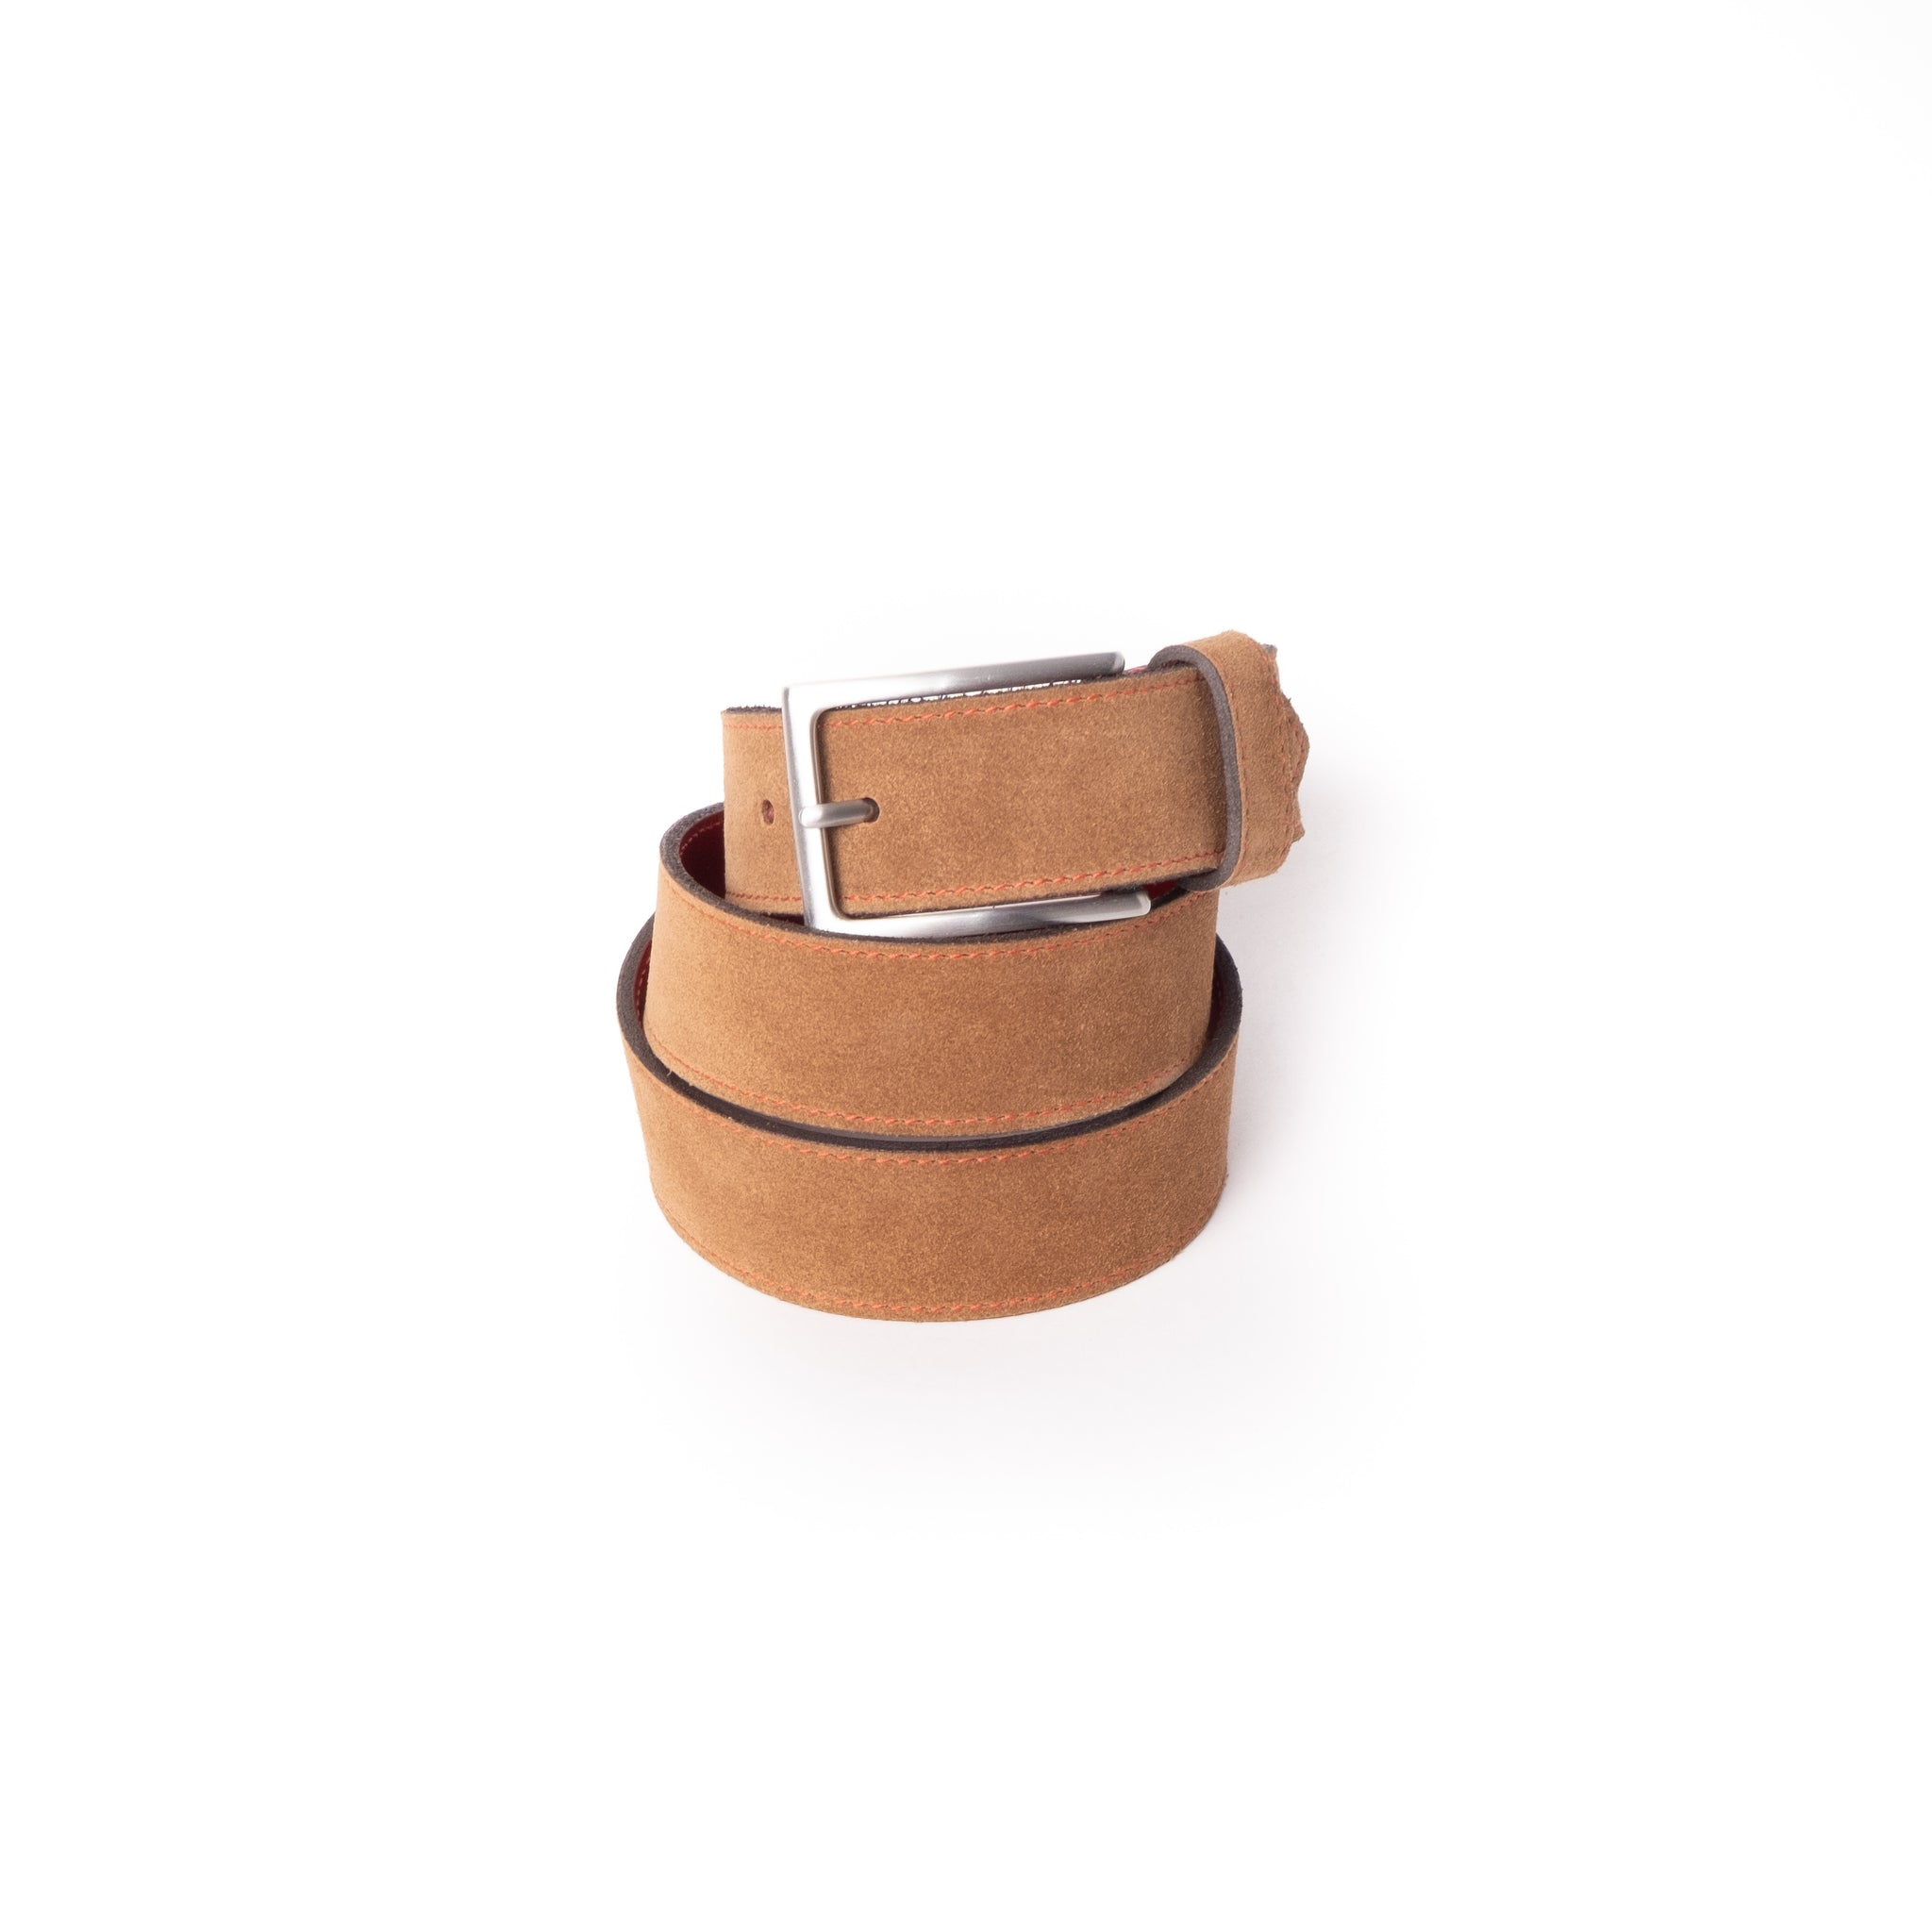 'Dirk' Jeans Belt - Tan Suede